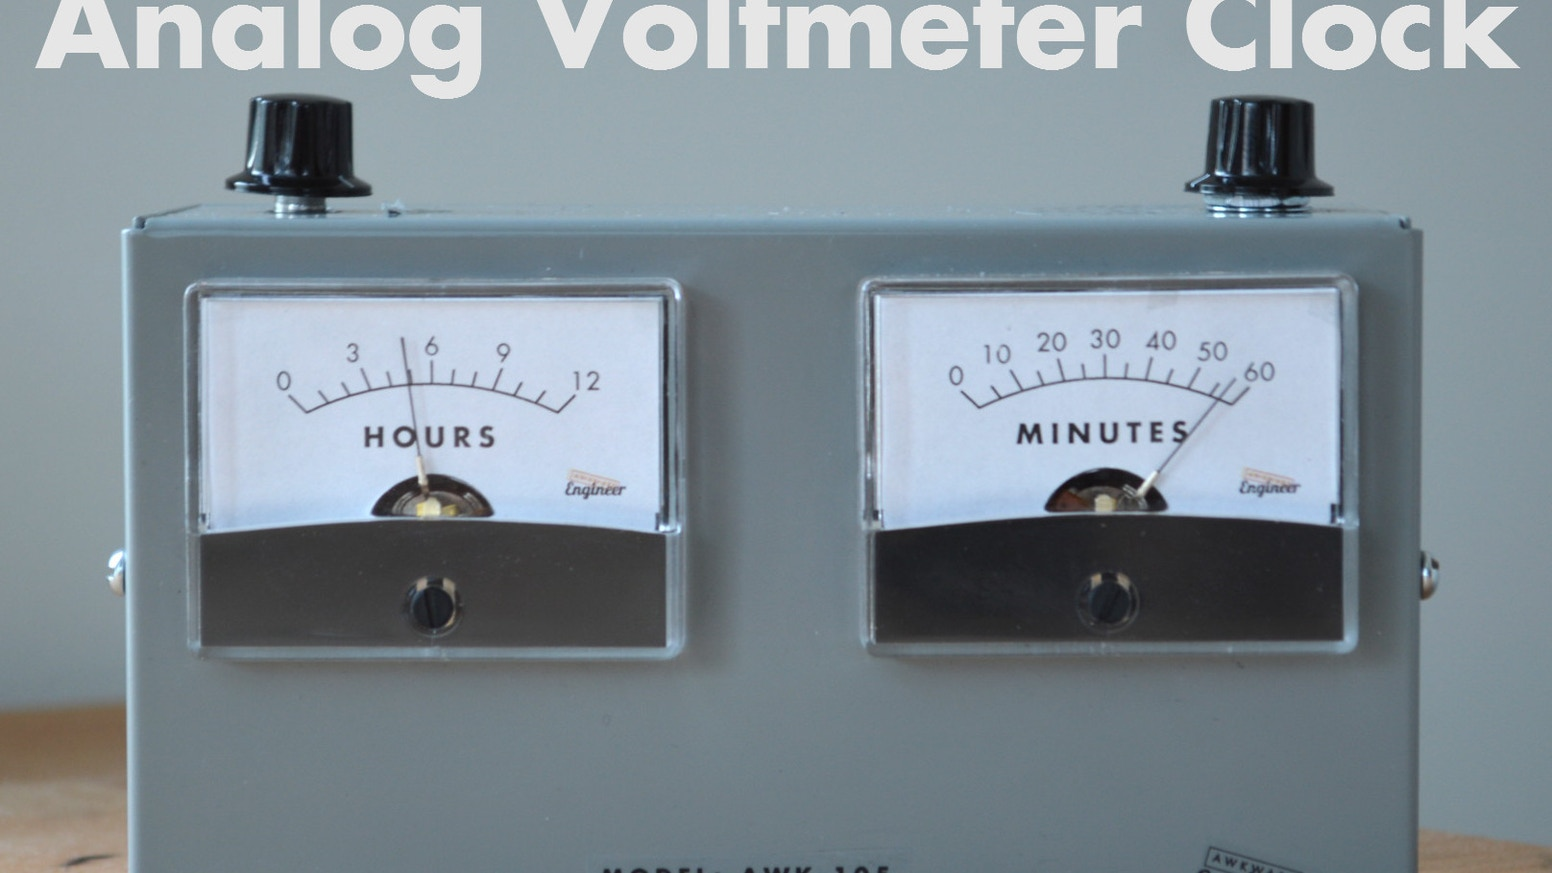 The Voltmeter Clock uses dual analog meters to tell time - one for hours and and one for minutes. It's both stylish and functional!